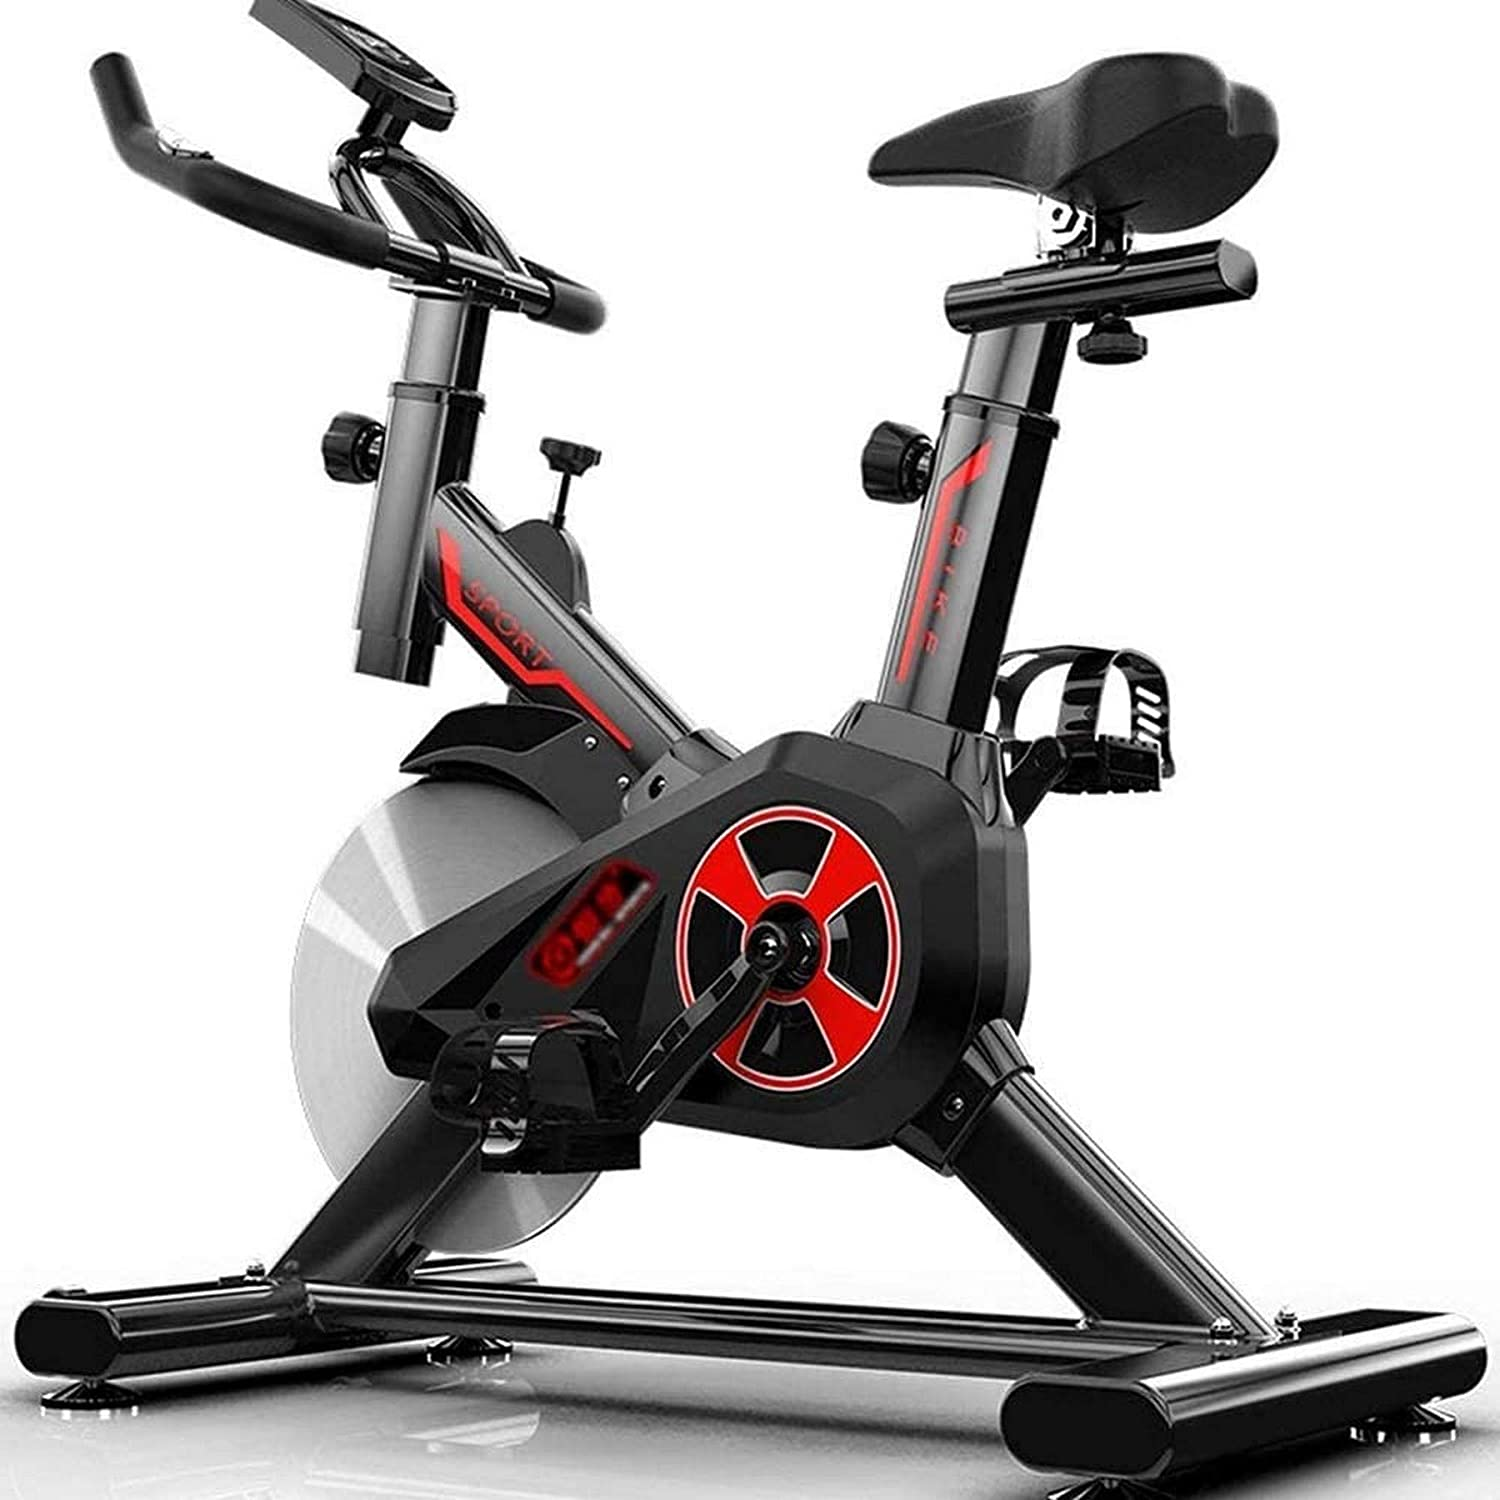 Wghz Home Spinning Bicycle Aerobic Sports Indoor Exercise Bike with 8KG Large Flywheel, Low-Noise Belt Drive System, Adjustable Height Handlebar & Seat, LCD Display